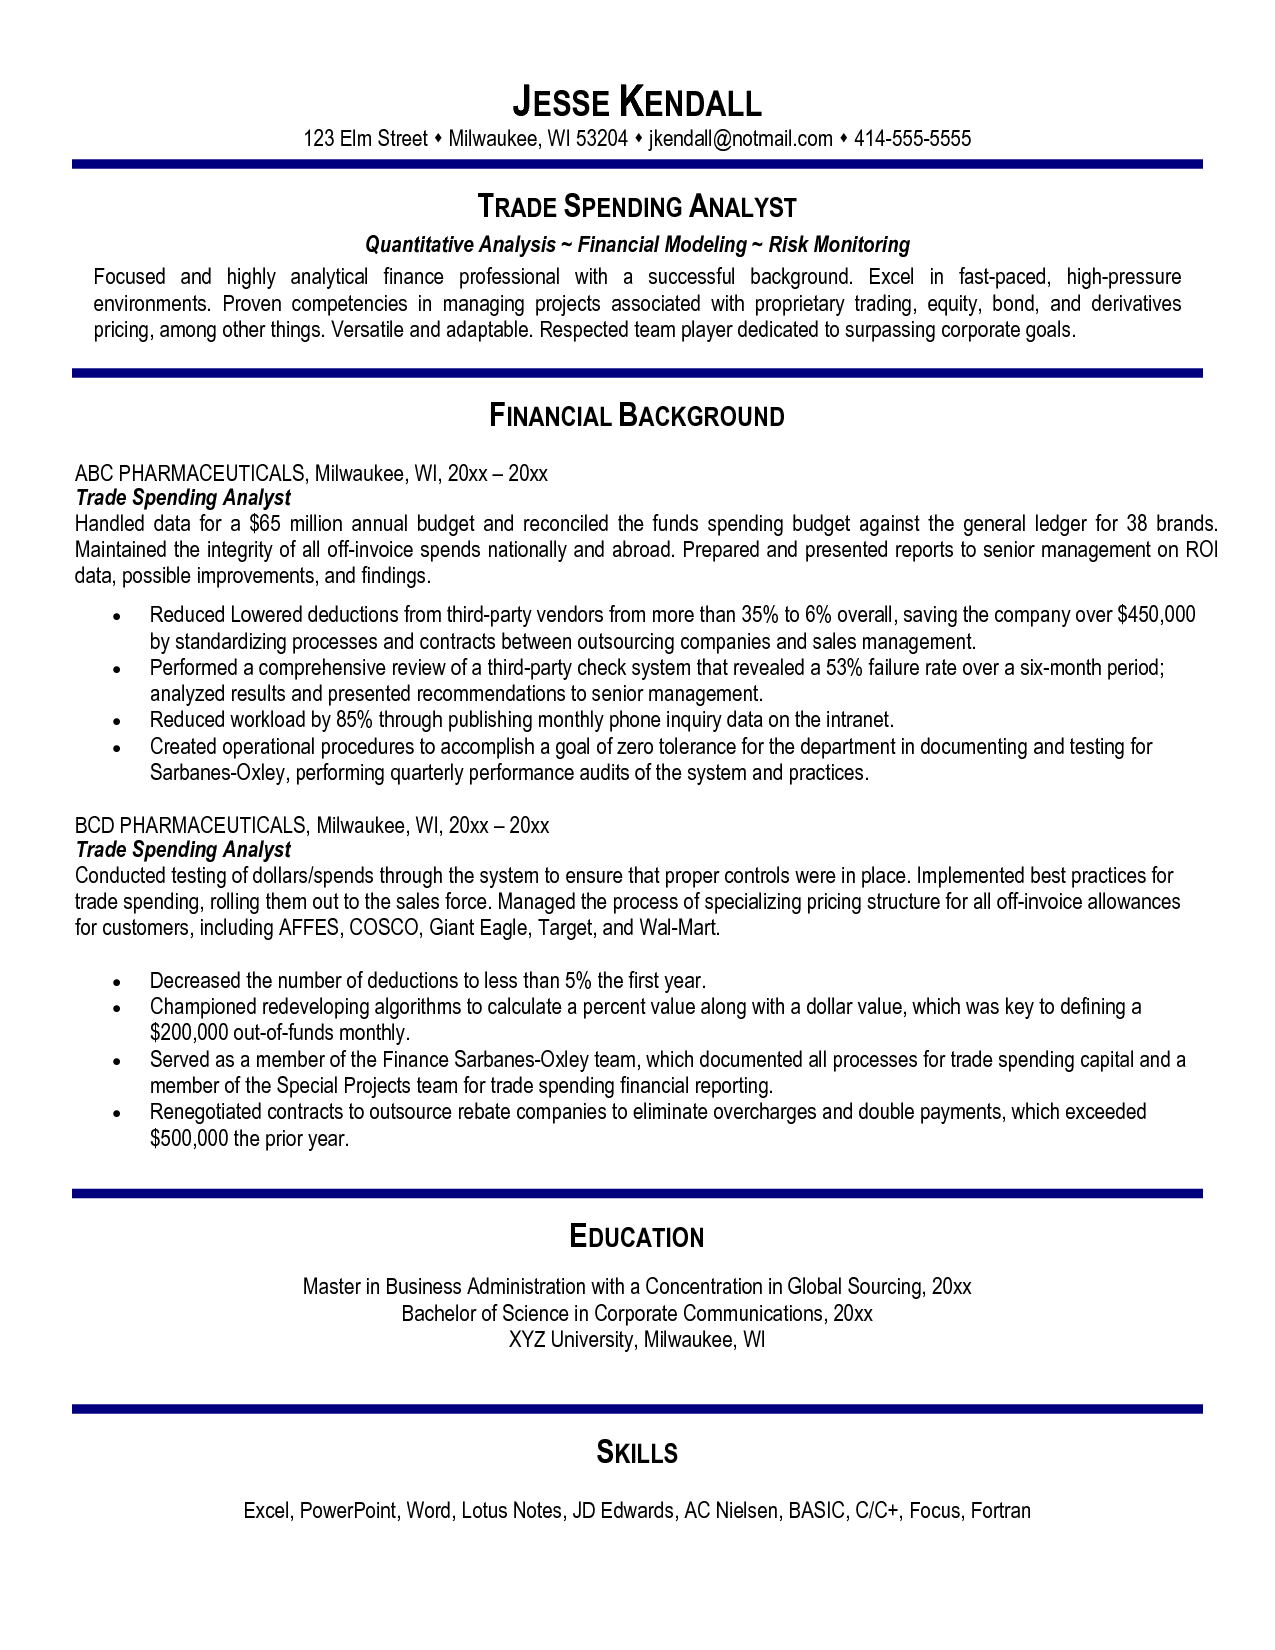 Senior Financial Analyst Resume Proprietary Trading Resume Sample  Httpwwwresumecareer